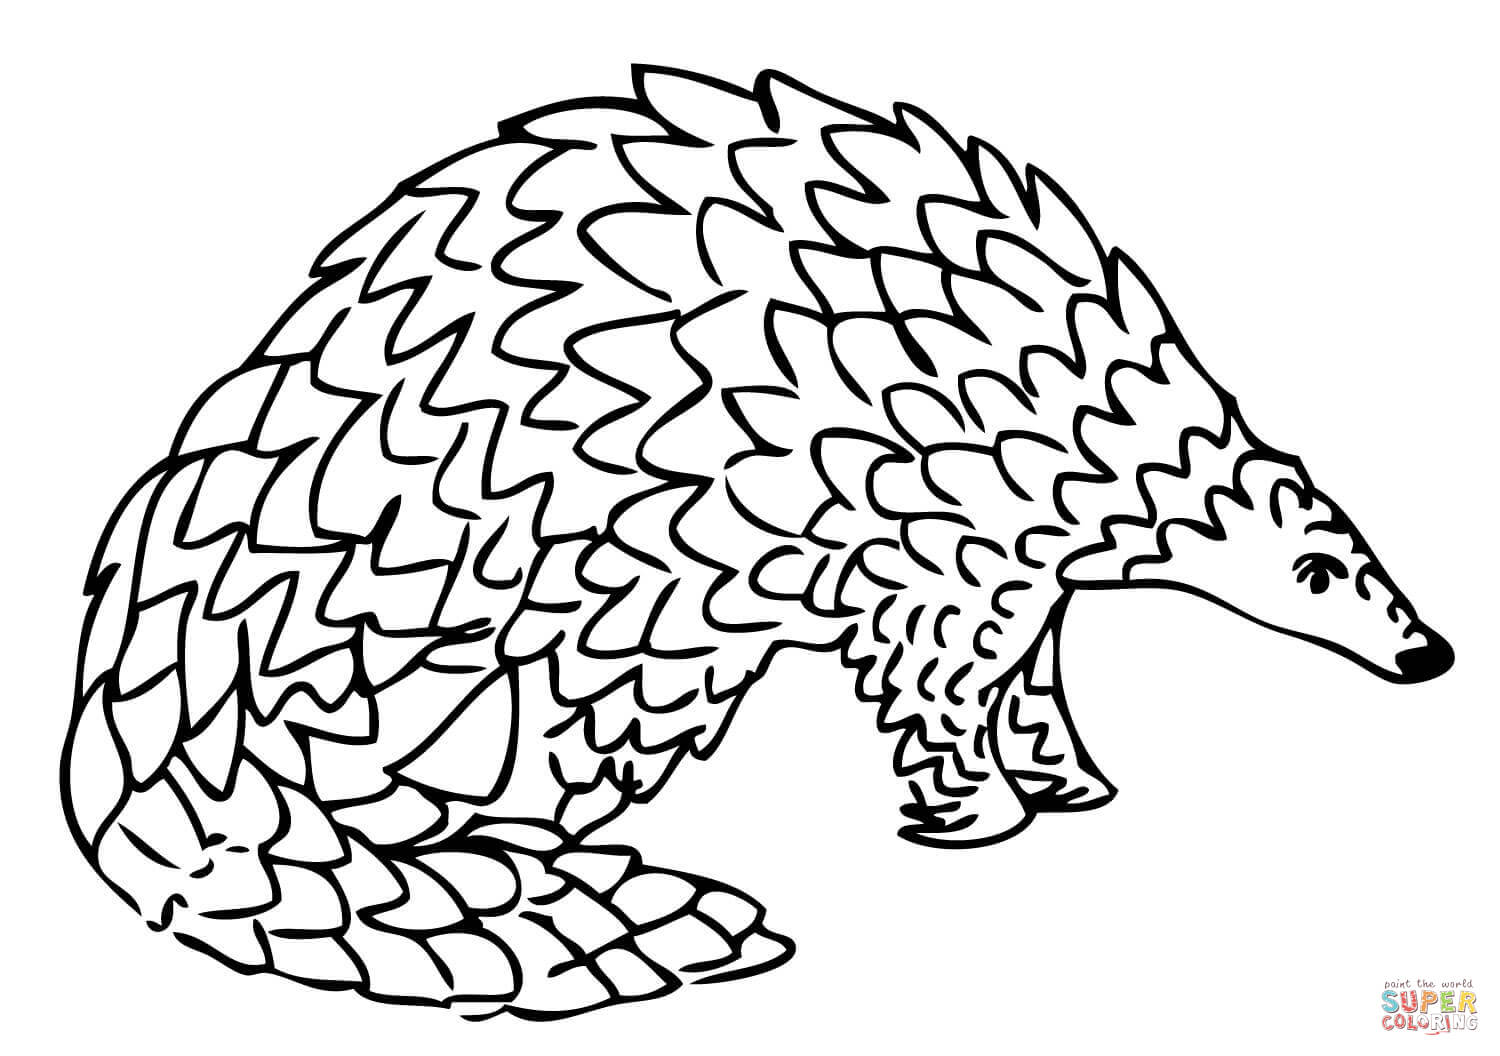 Labeled Body Parts Coloring Pages Coloring Pages